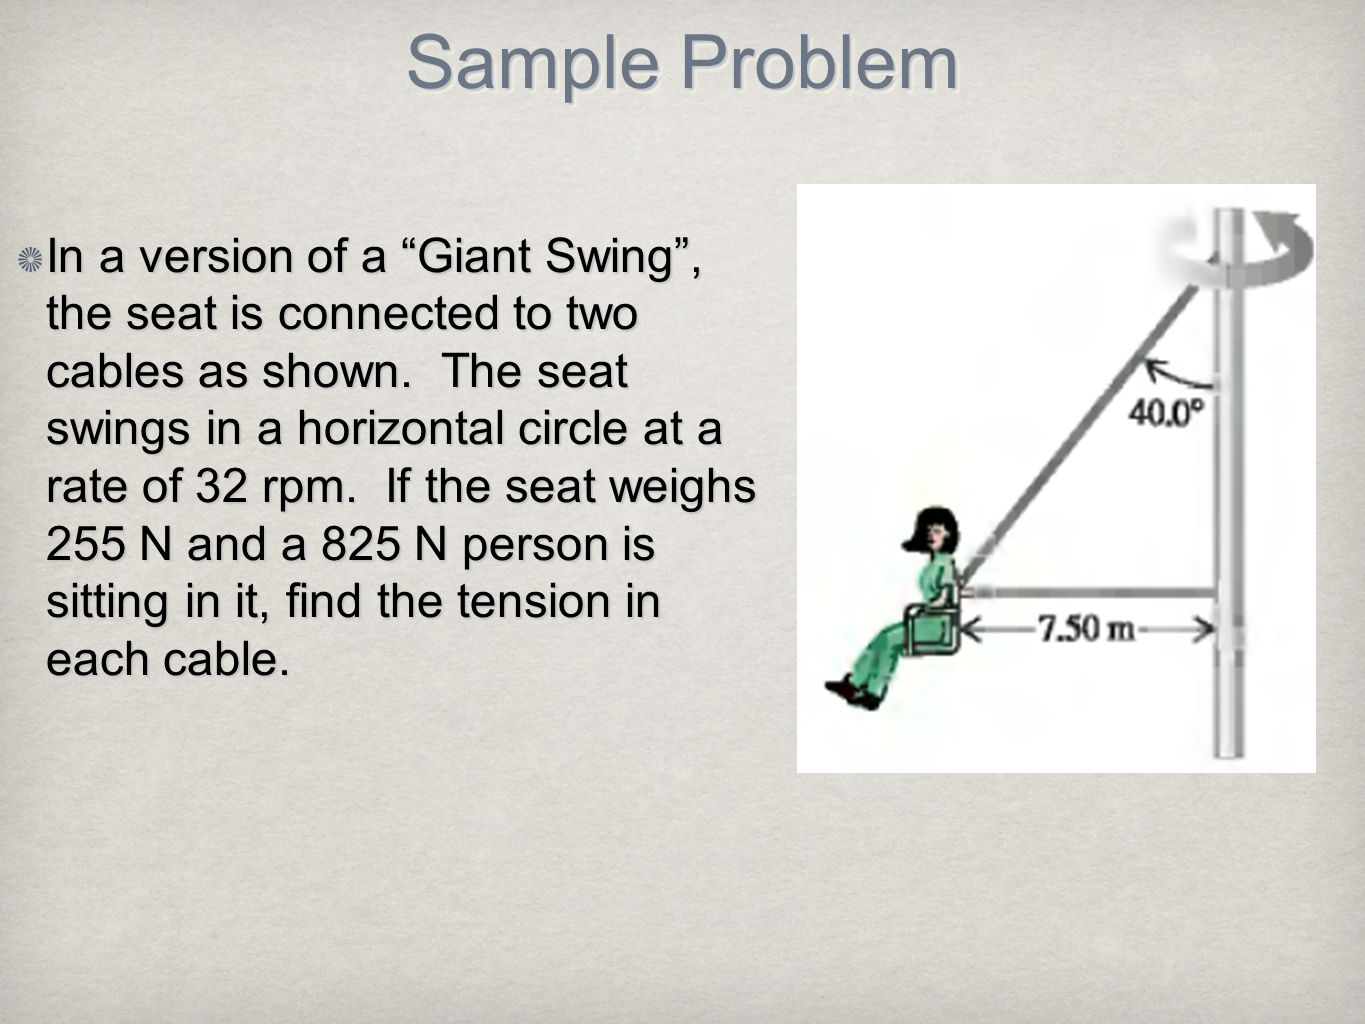 In a version of a Giant Swing , the seat is connected to two cables as shown. The seat swings in a horizontal circle at a rate of 32 rpm. If the seat weighs 255 N and a 825 N person is sitting in it, find the tension in each cable.